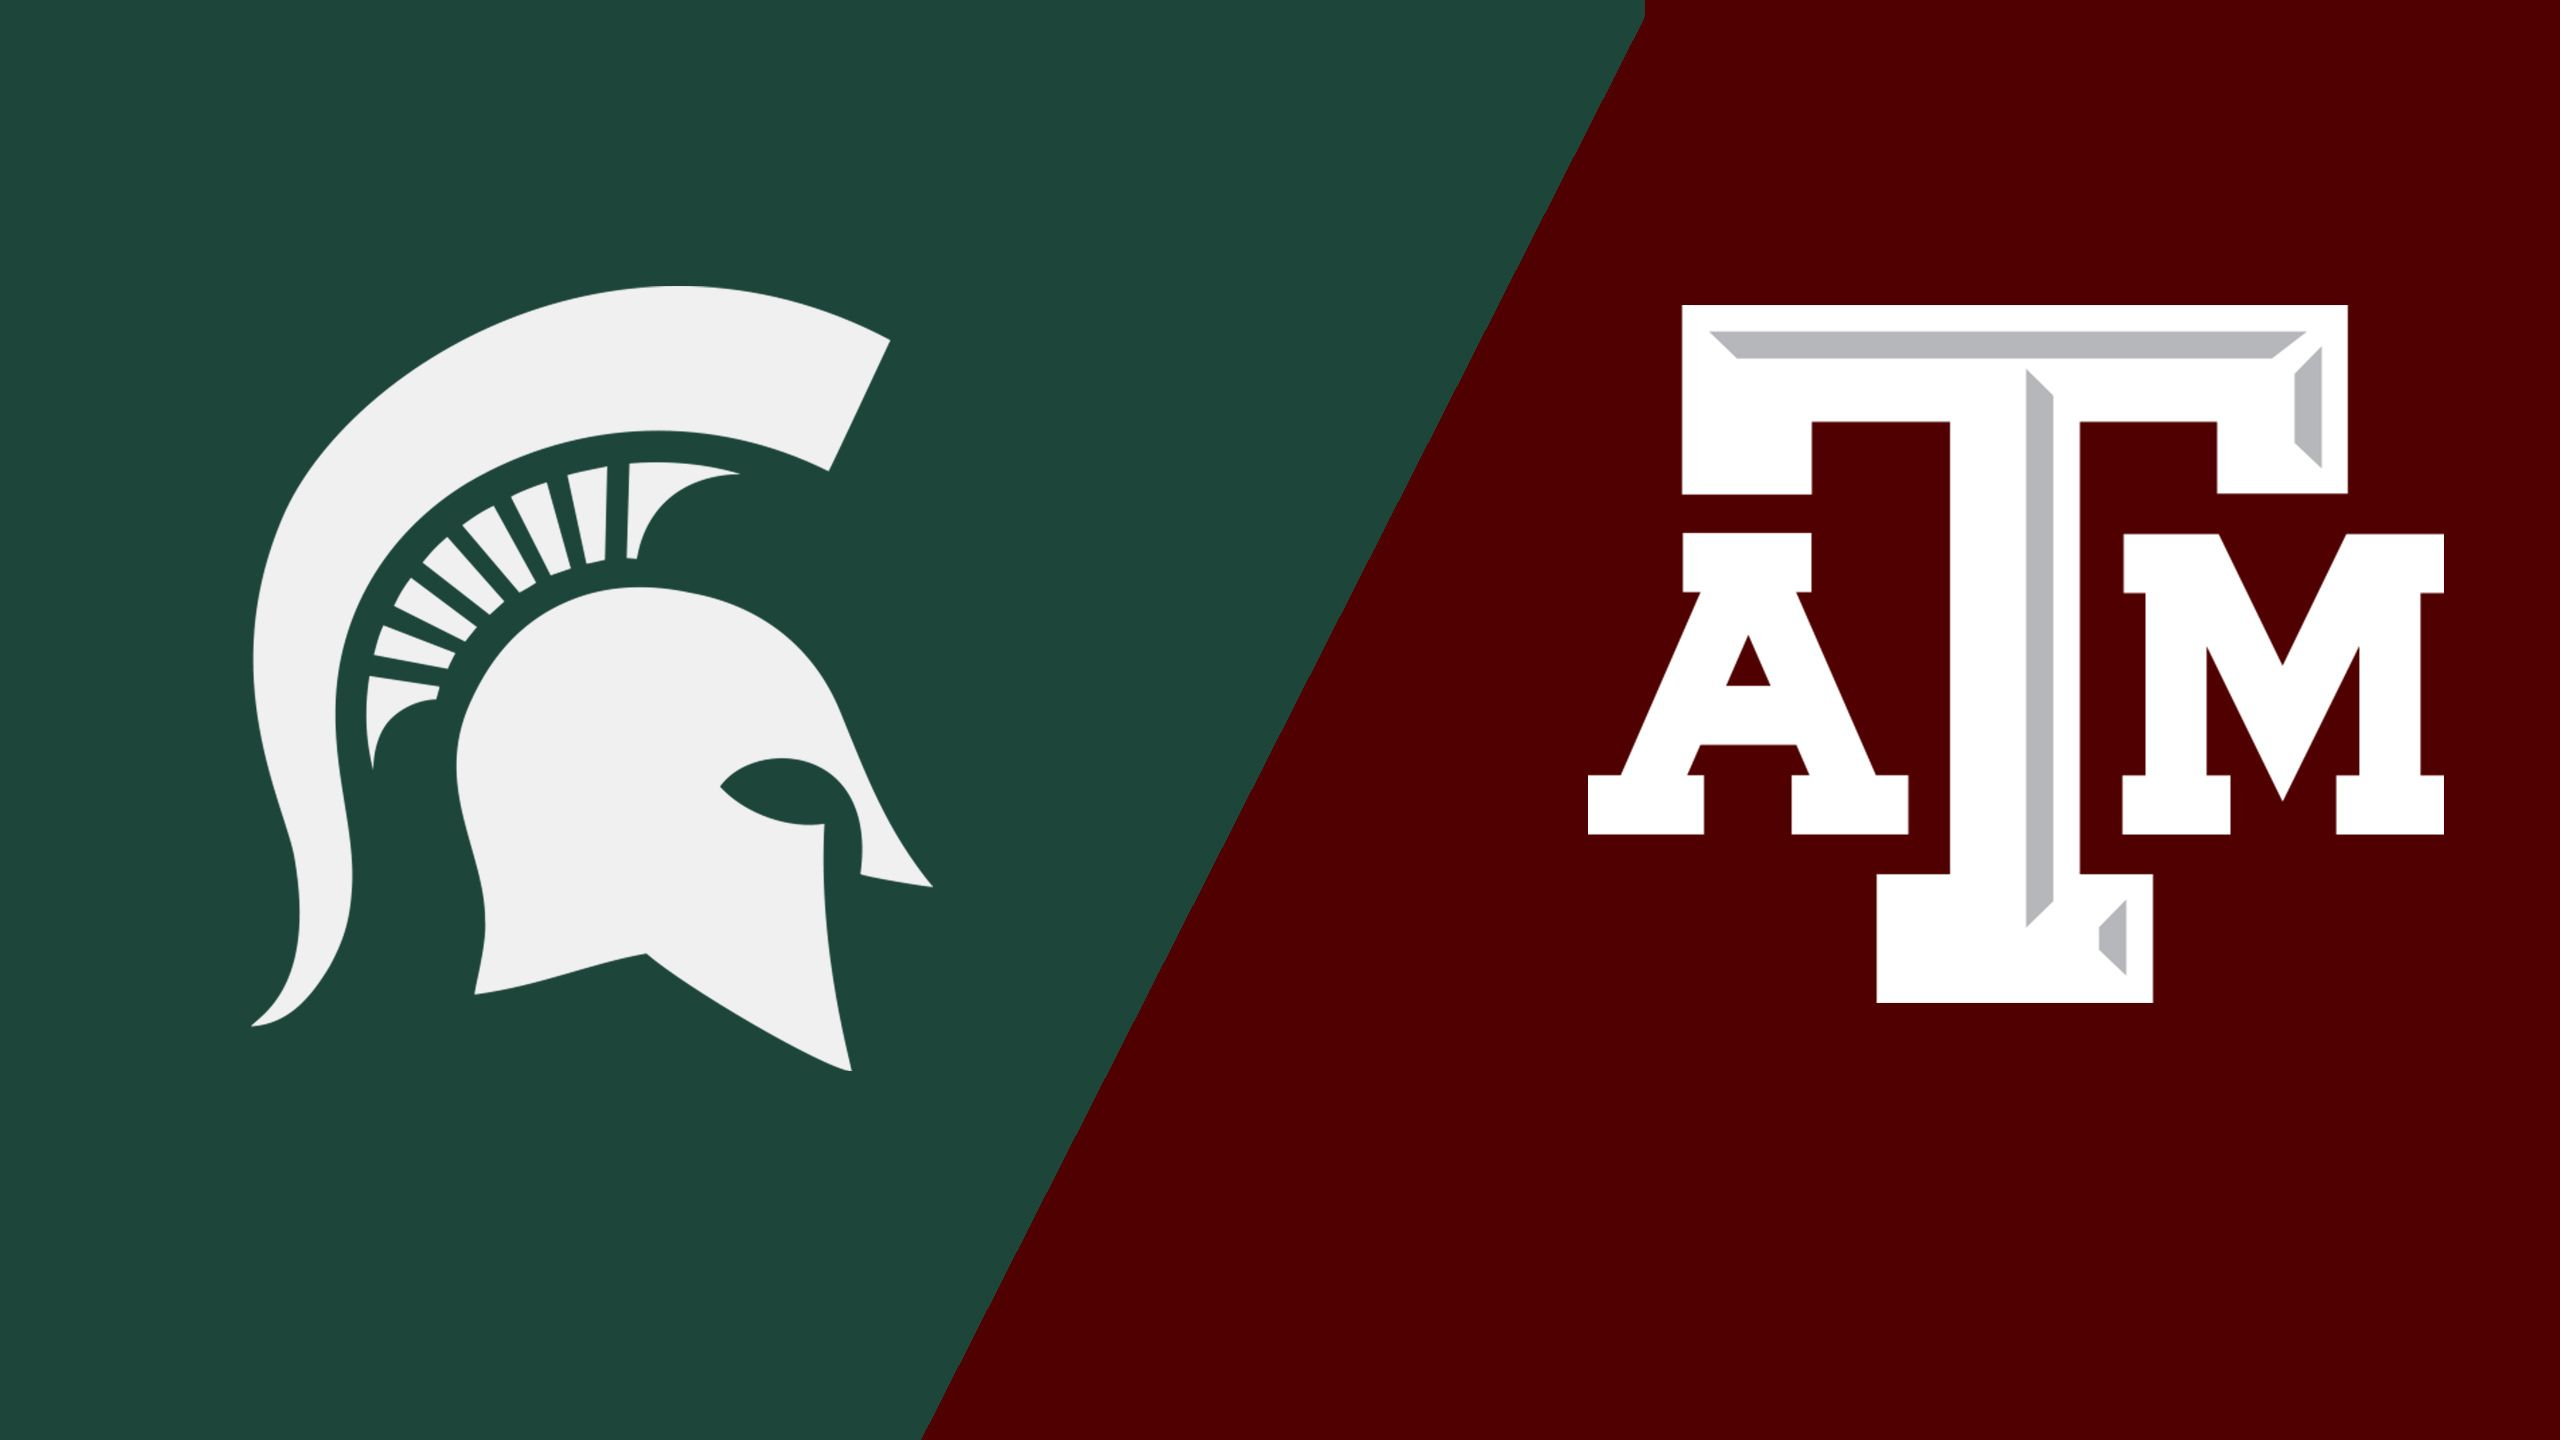 Michigan State vs. #7 Texas A&M (Softball)